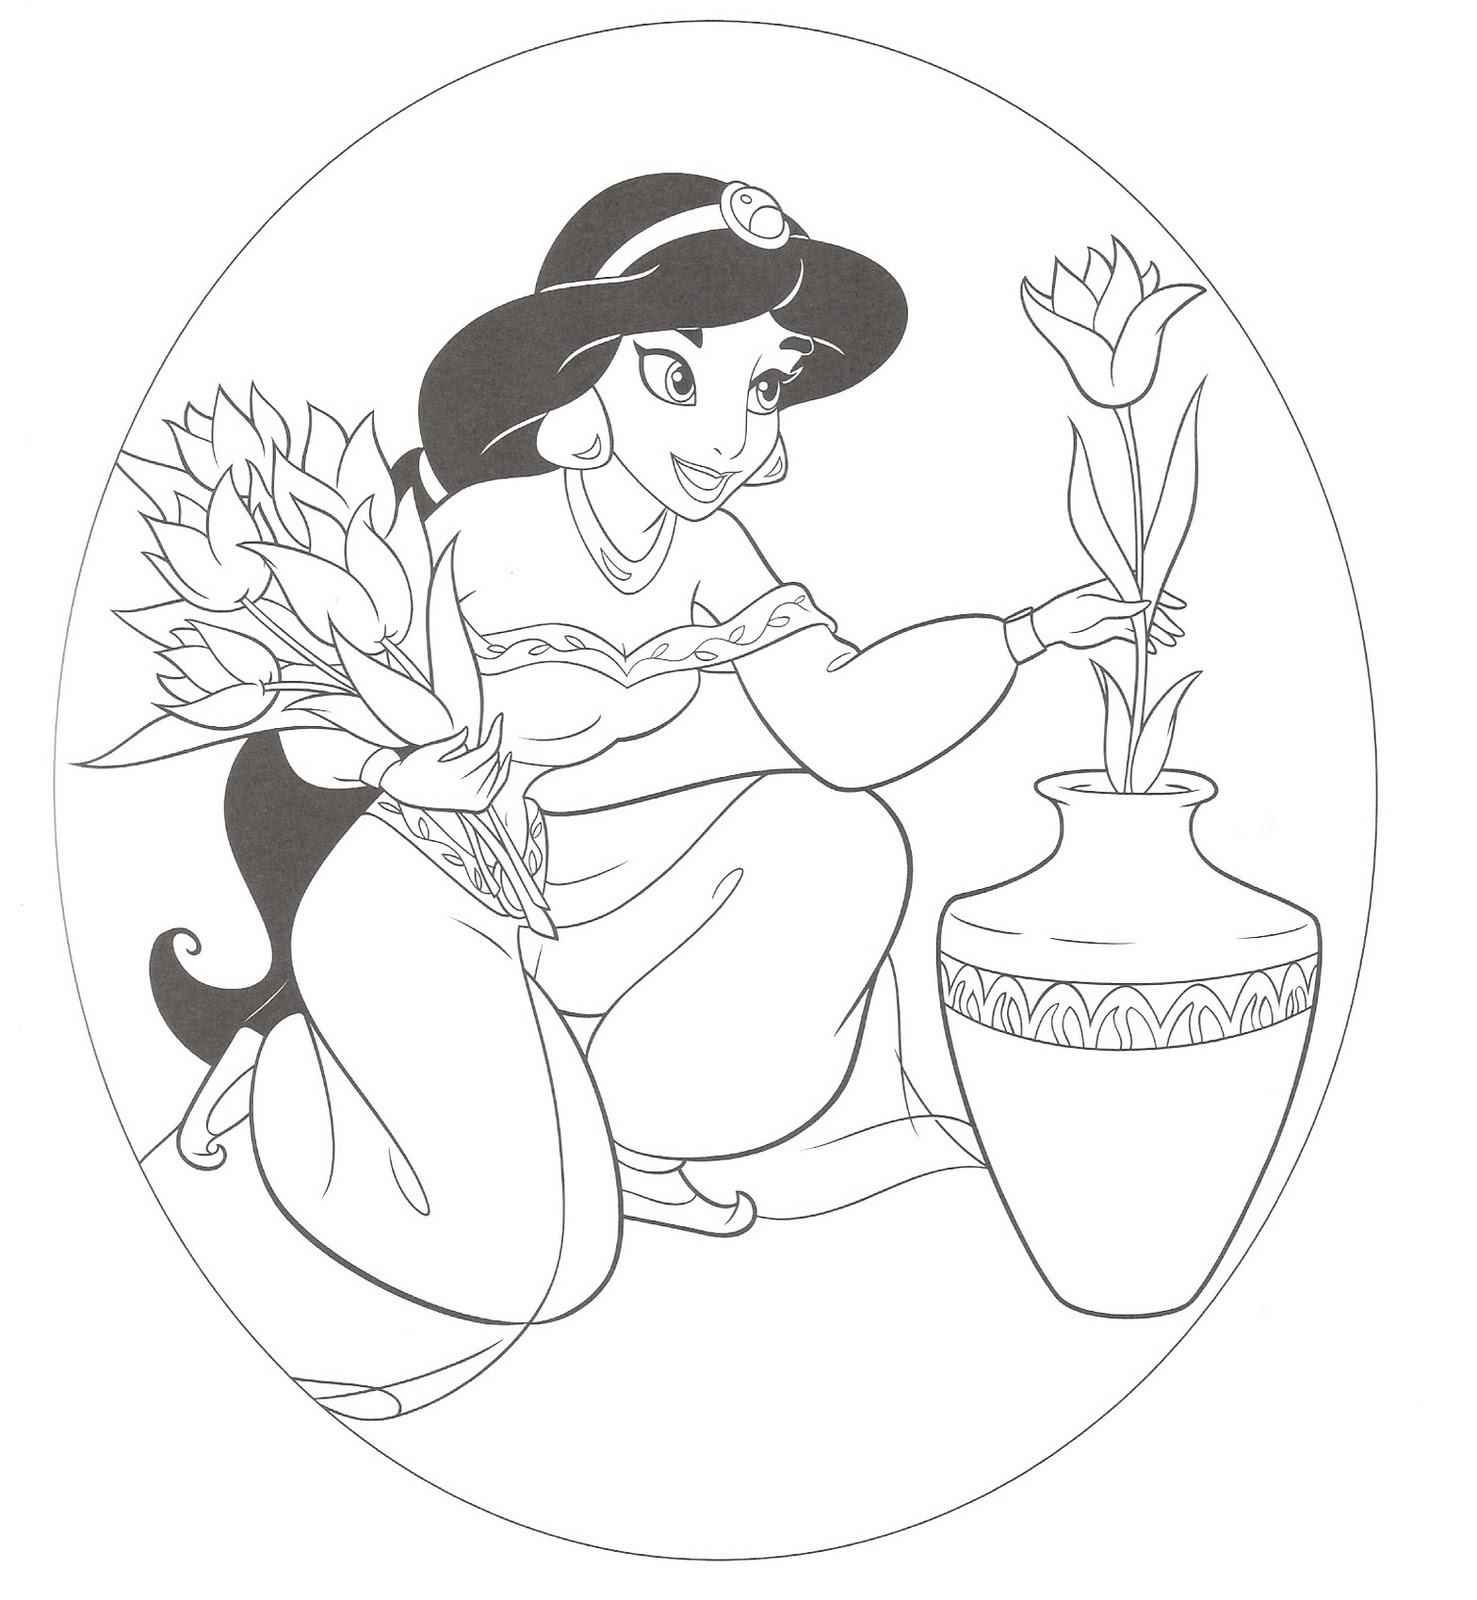 coloring book pages disney princesses - photo#21